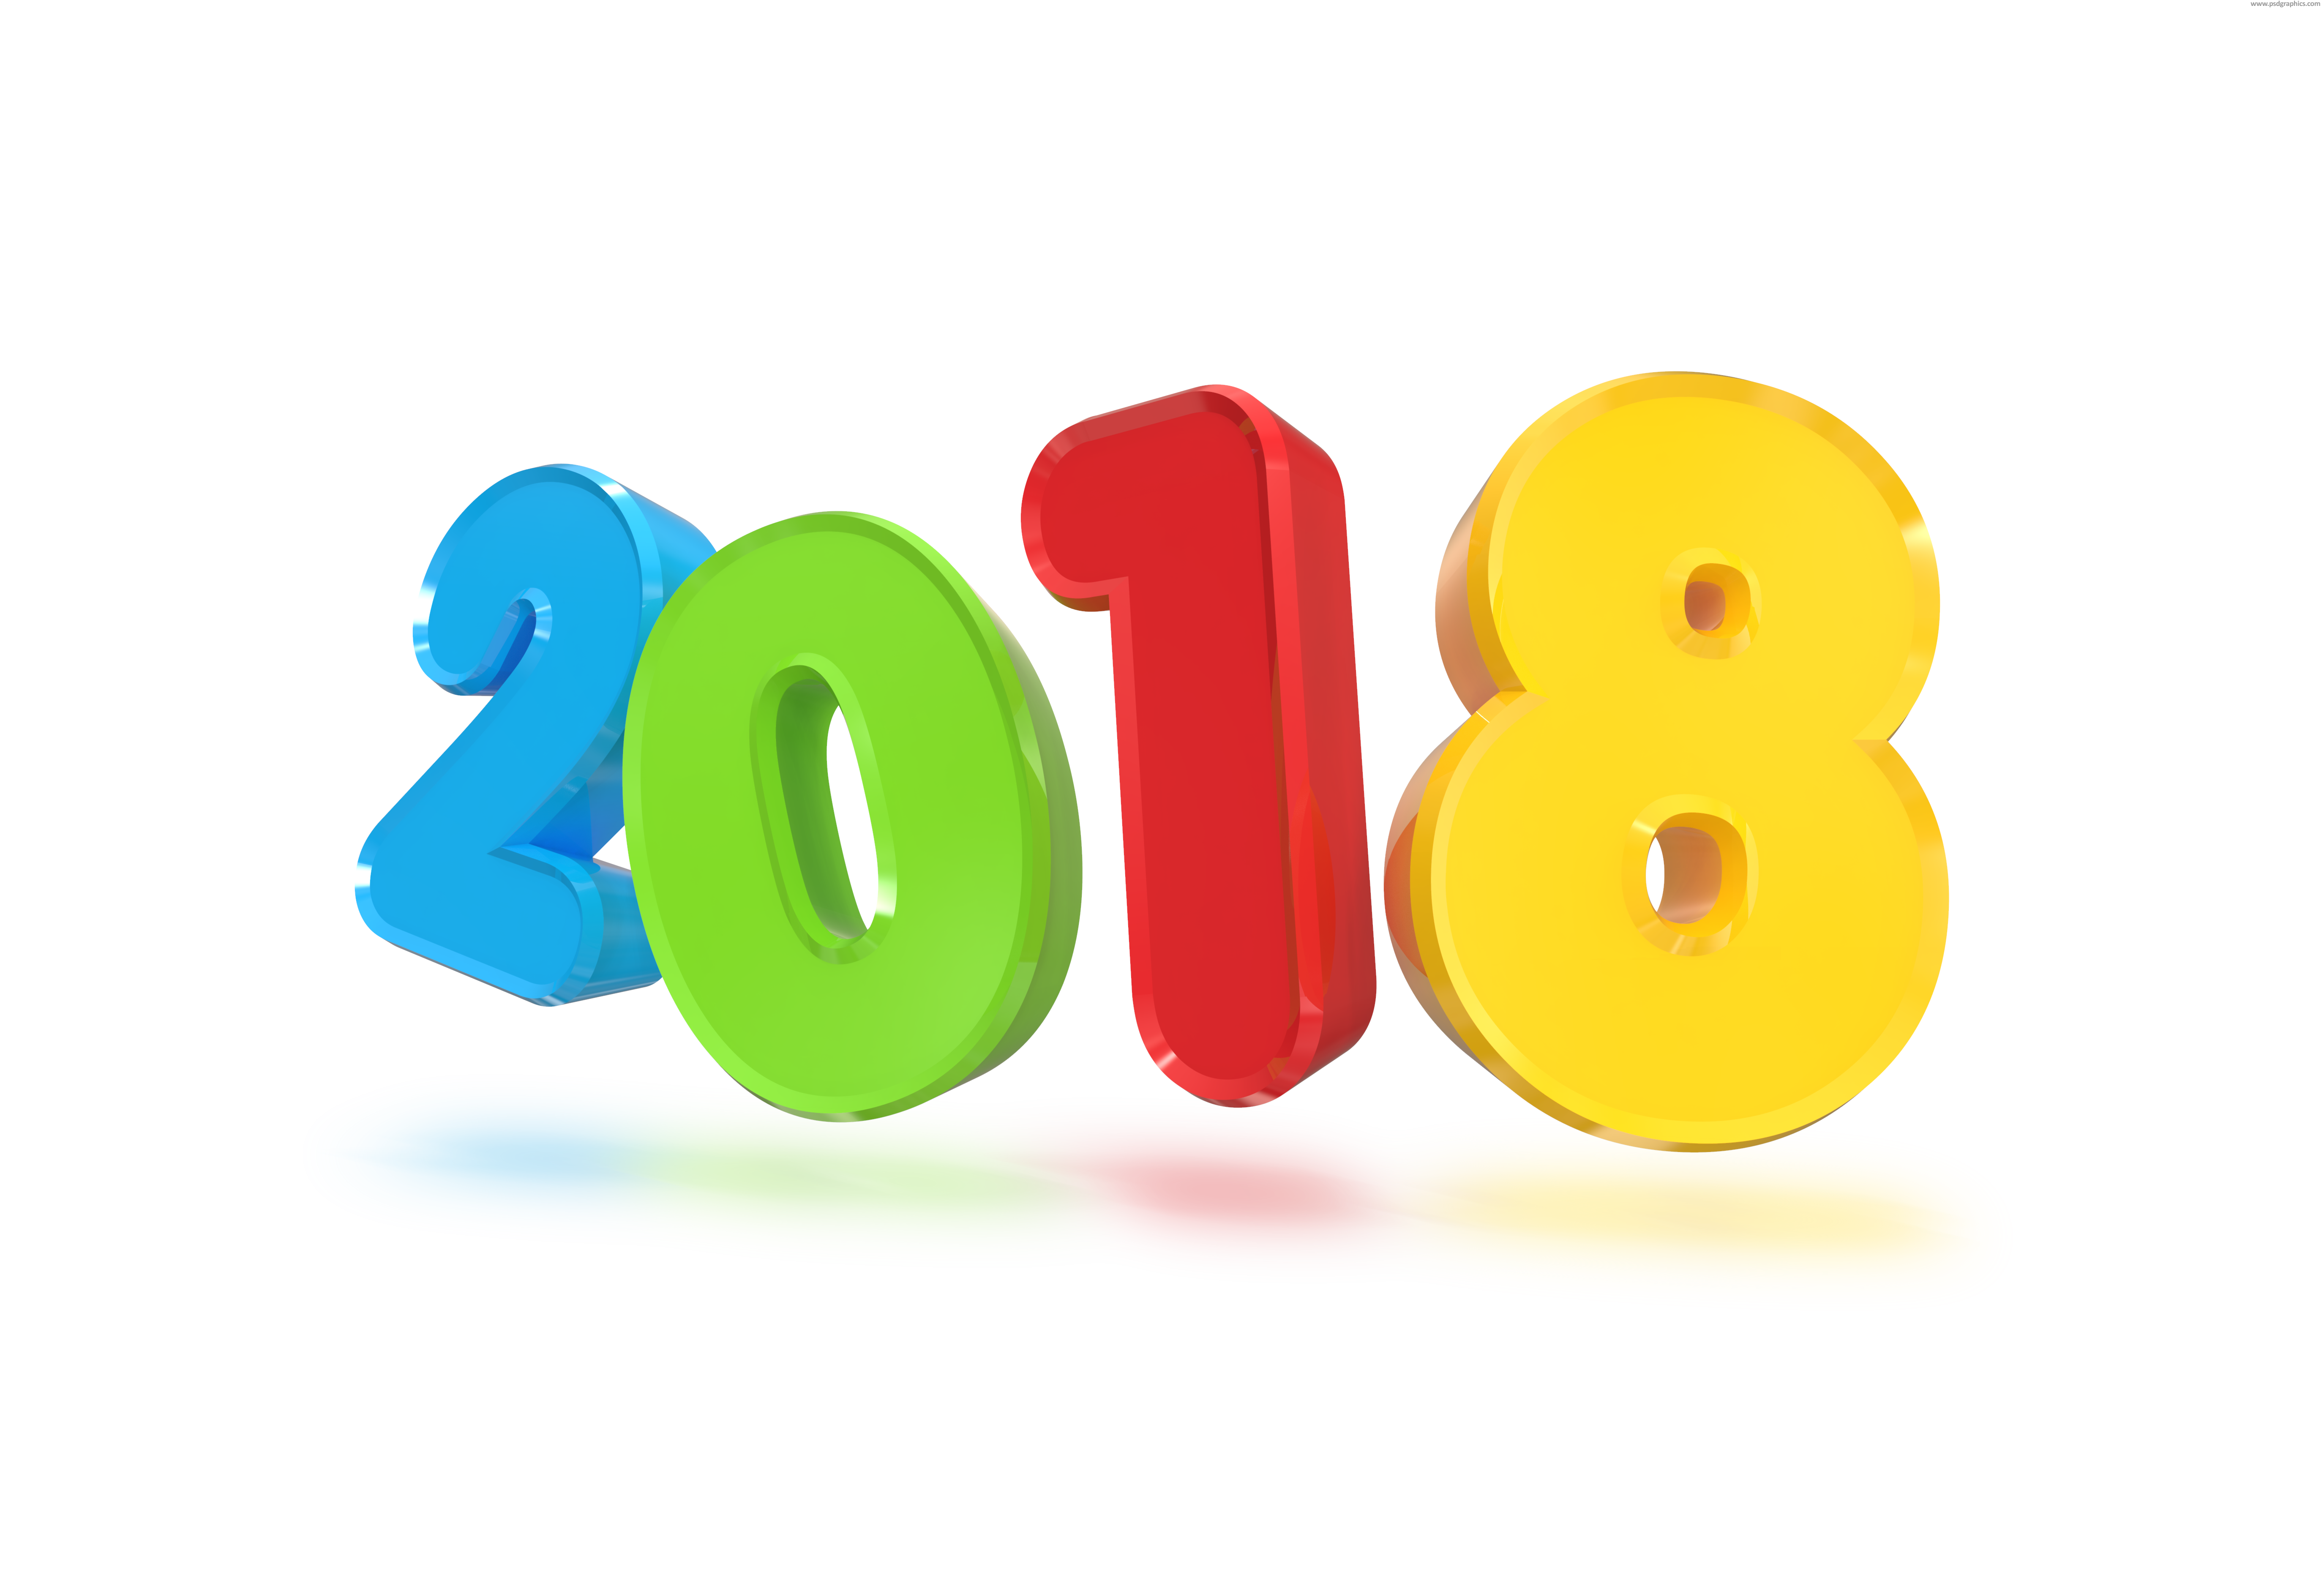 2018 new year png. D sign psdgraphics